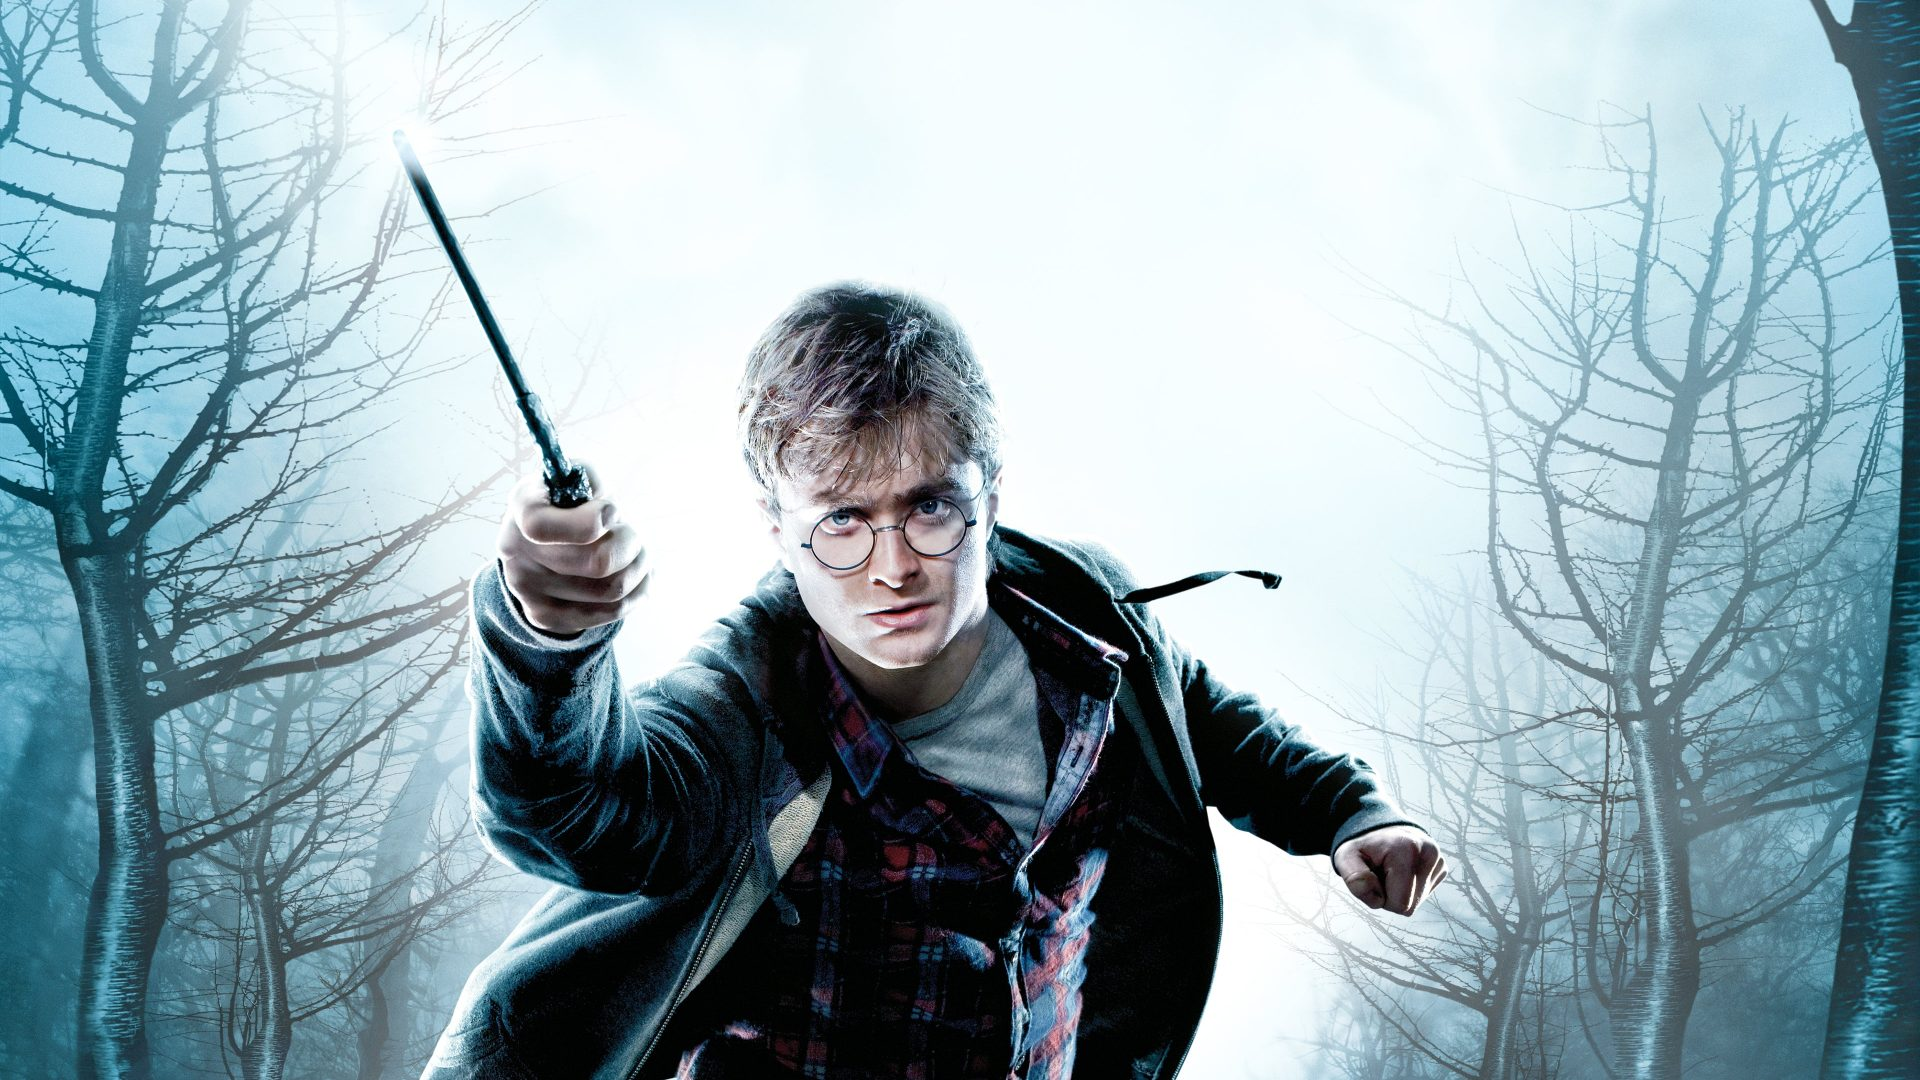 Harry Potter movies in order — Harry Potter and the Deathly Hallows